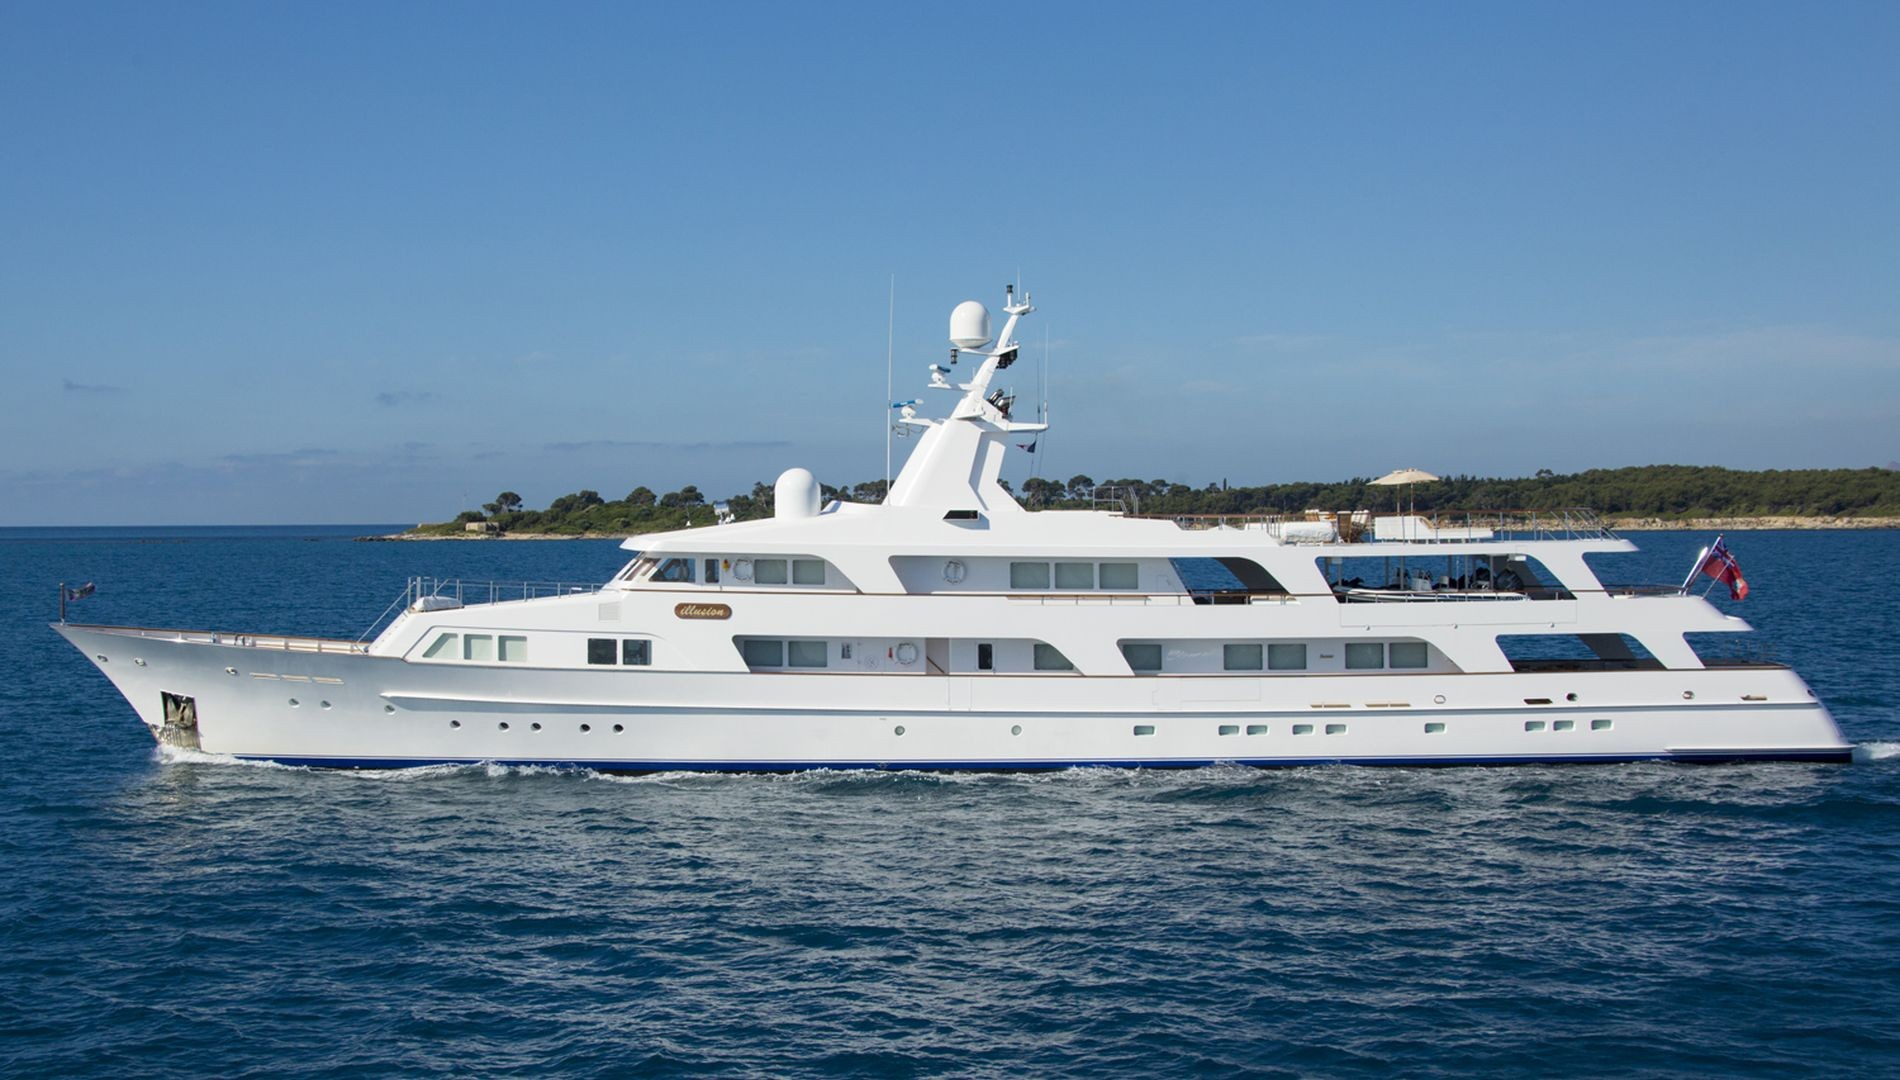 ILLUSION I Yacht Charter Details Feadship CHARTERWORLD